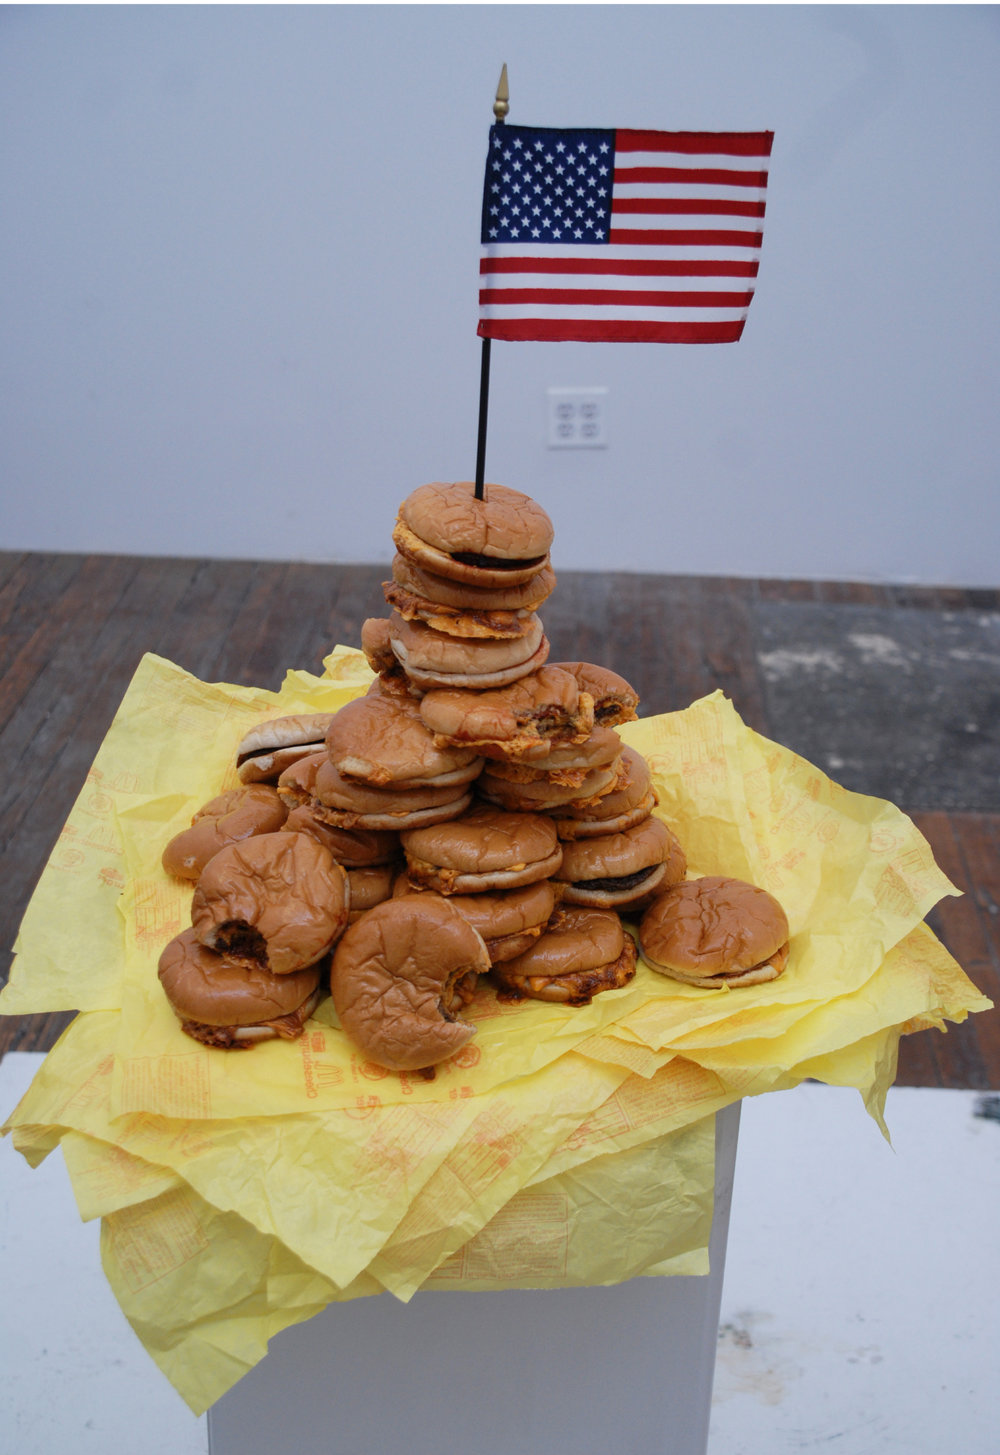 Joaquin Segura, The Battle of Hamburger Hill, 2008, mixed media sculpture, dimensions variable